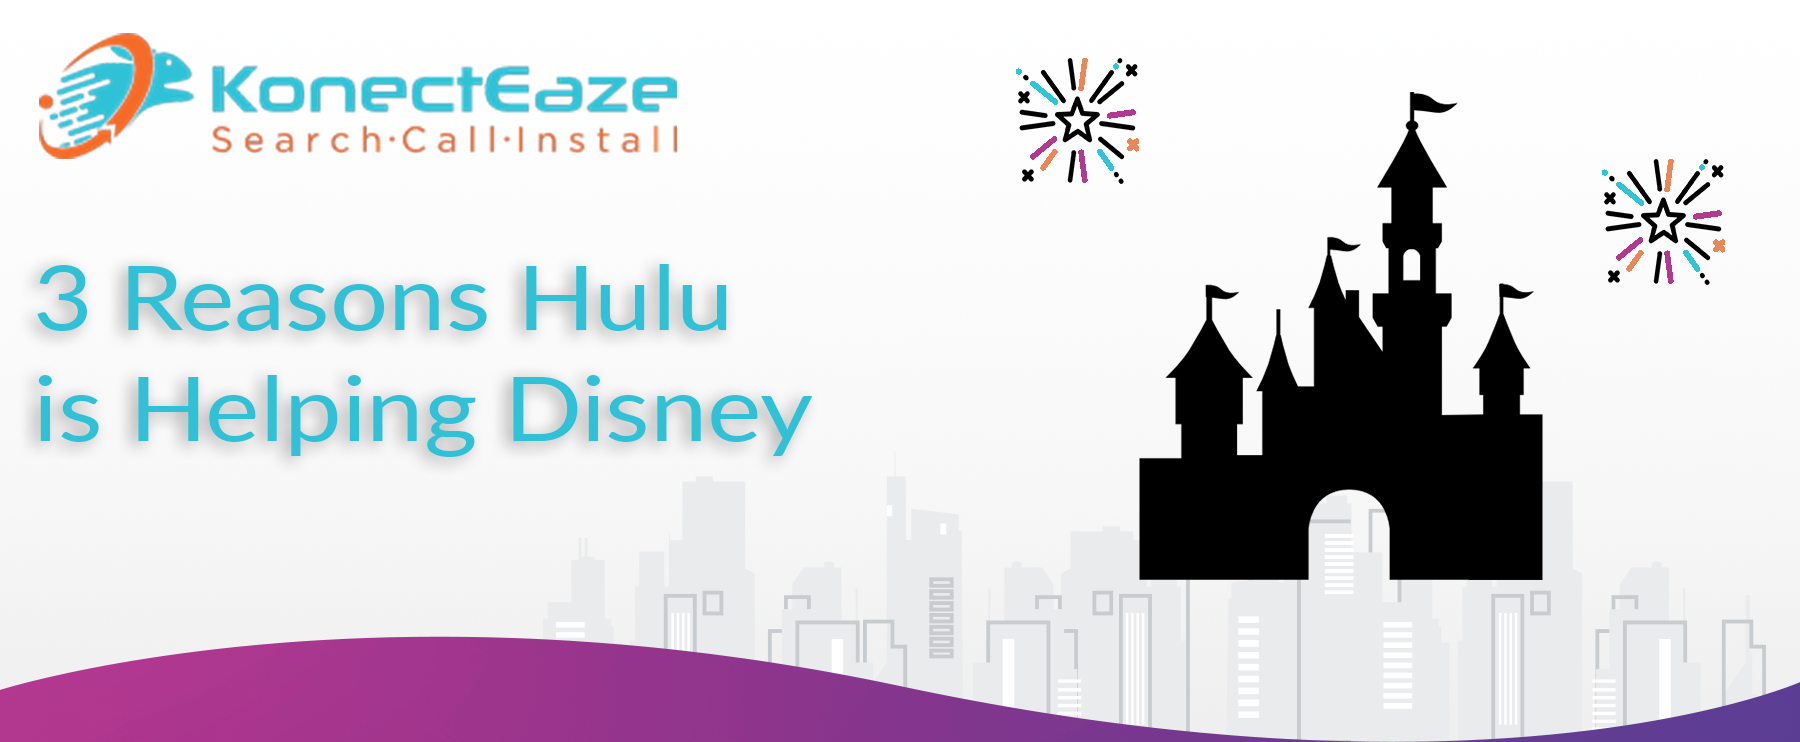 3 Reasons Hulu is Helping Disney